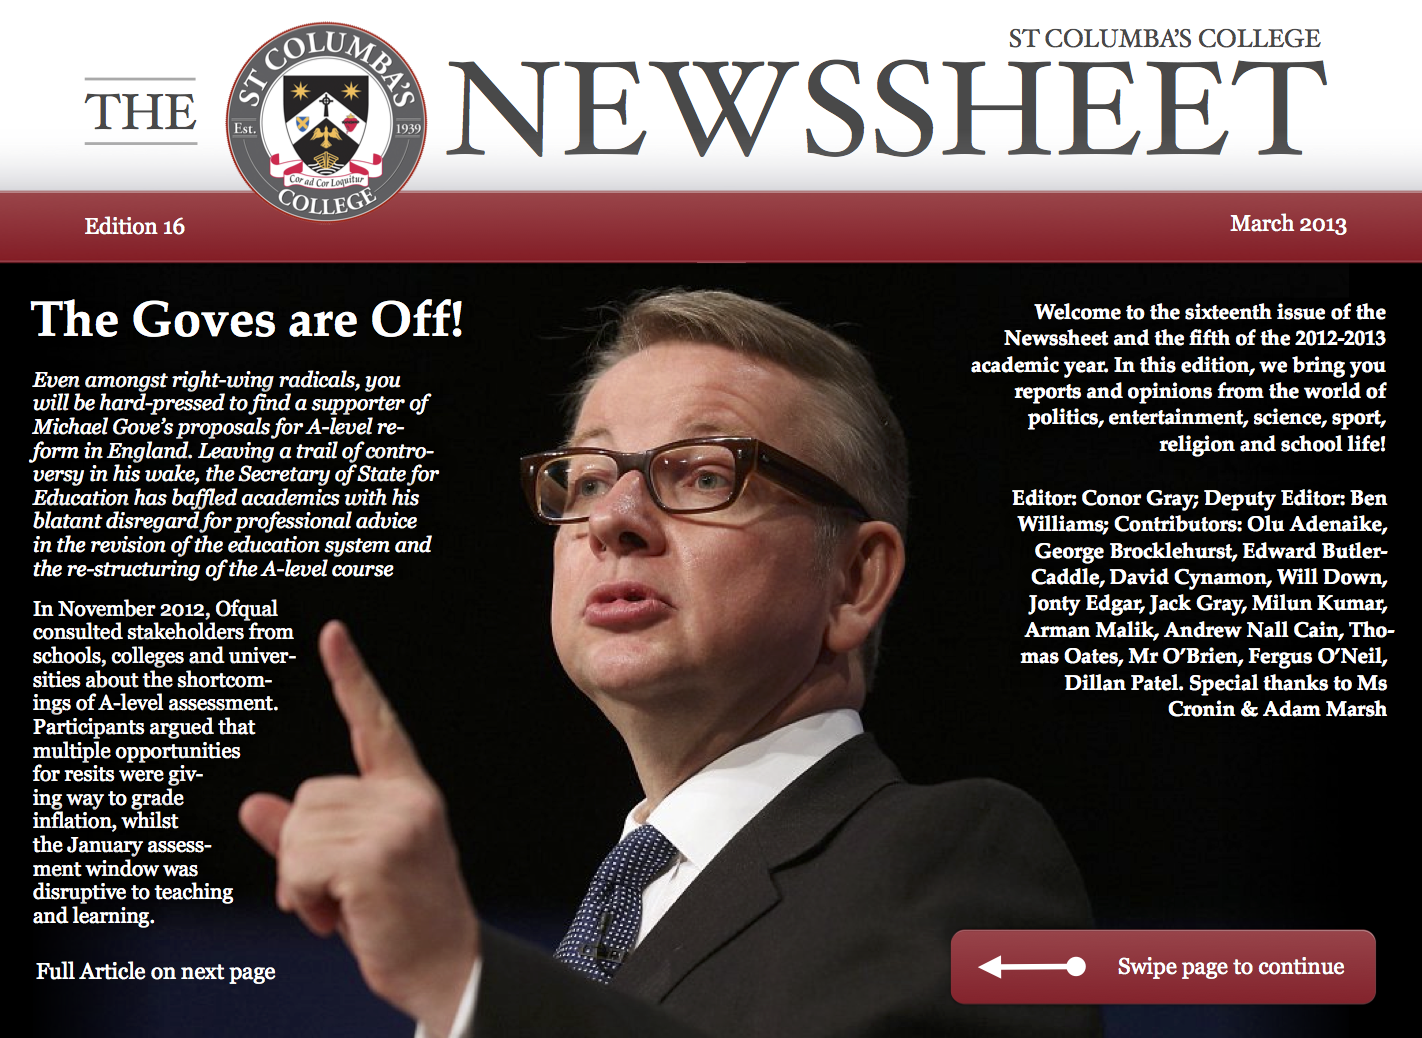 The Newssheet March 2013 1.png